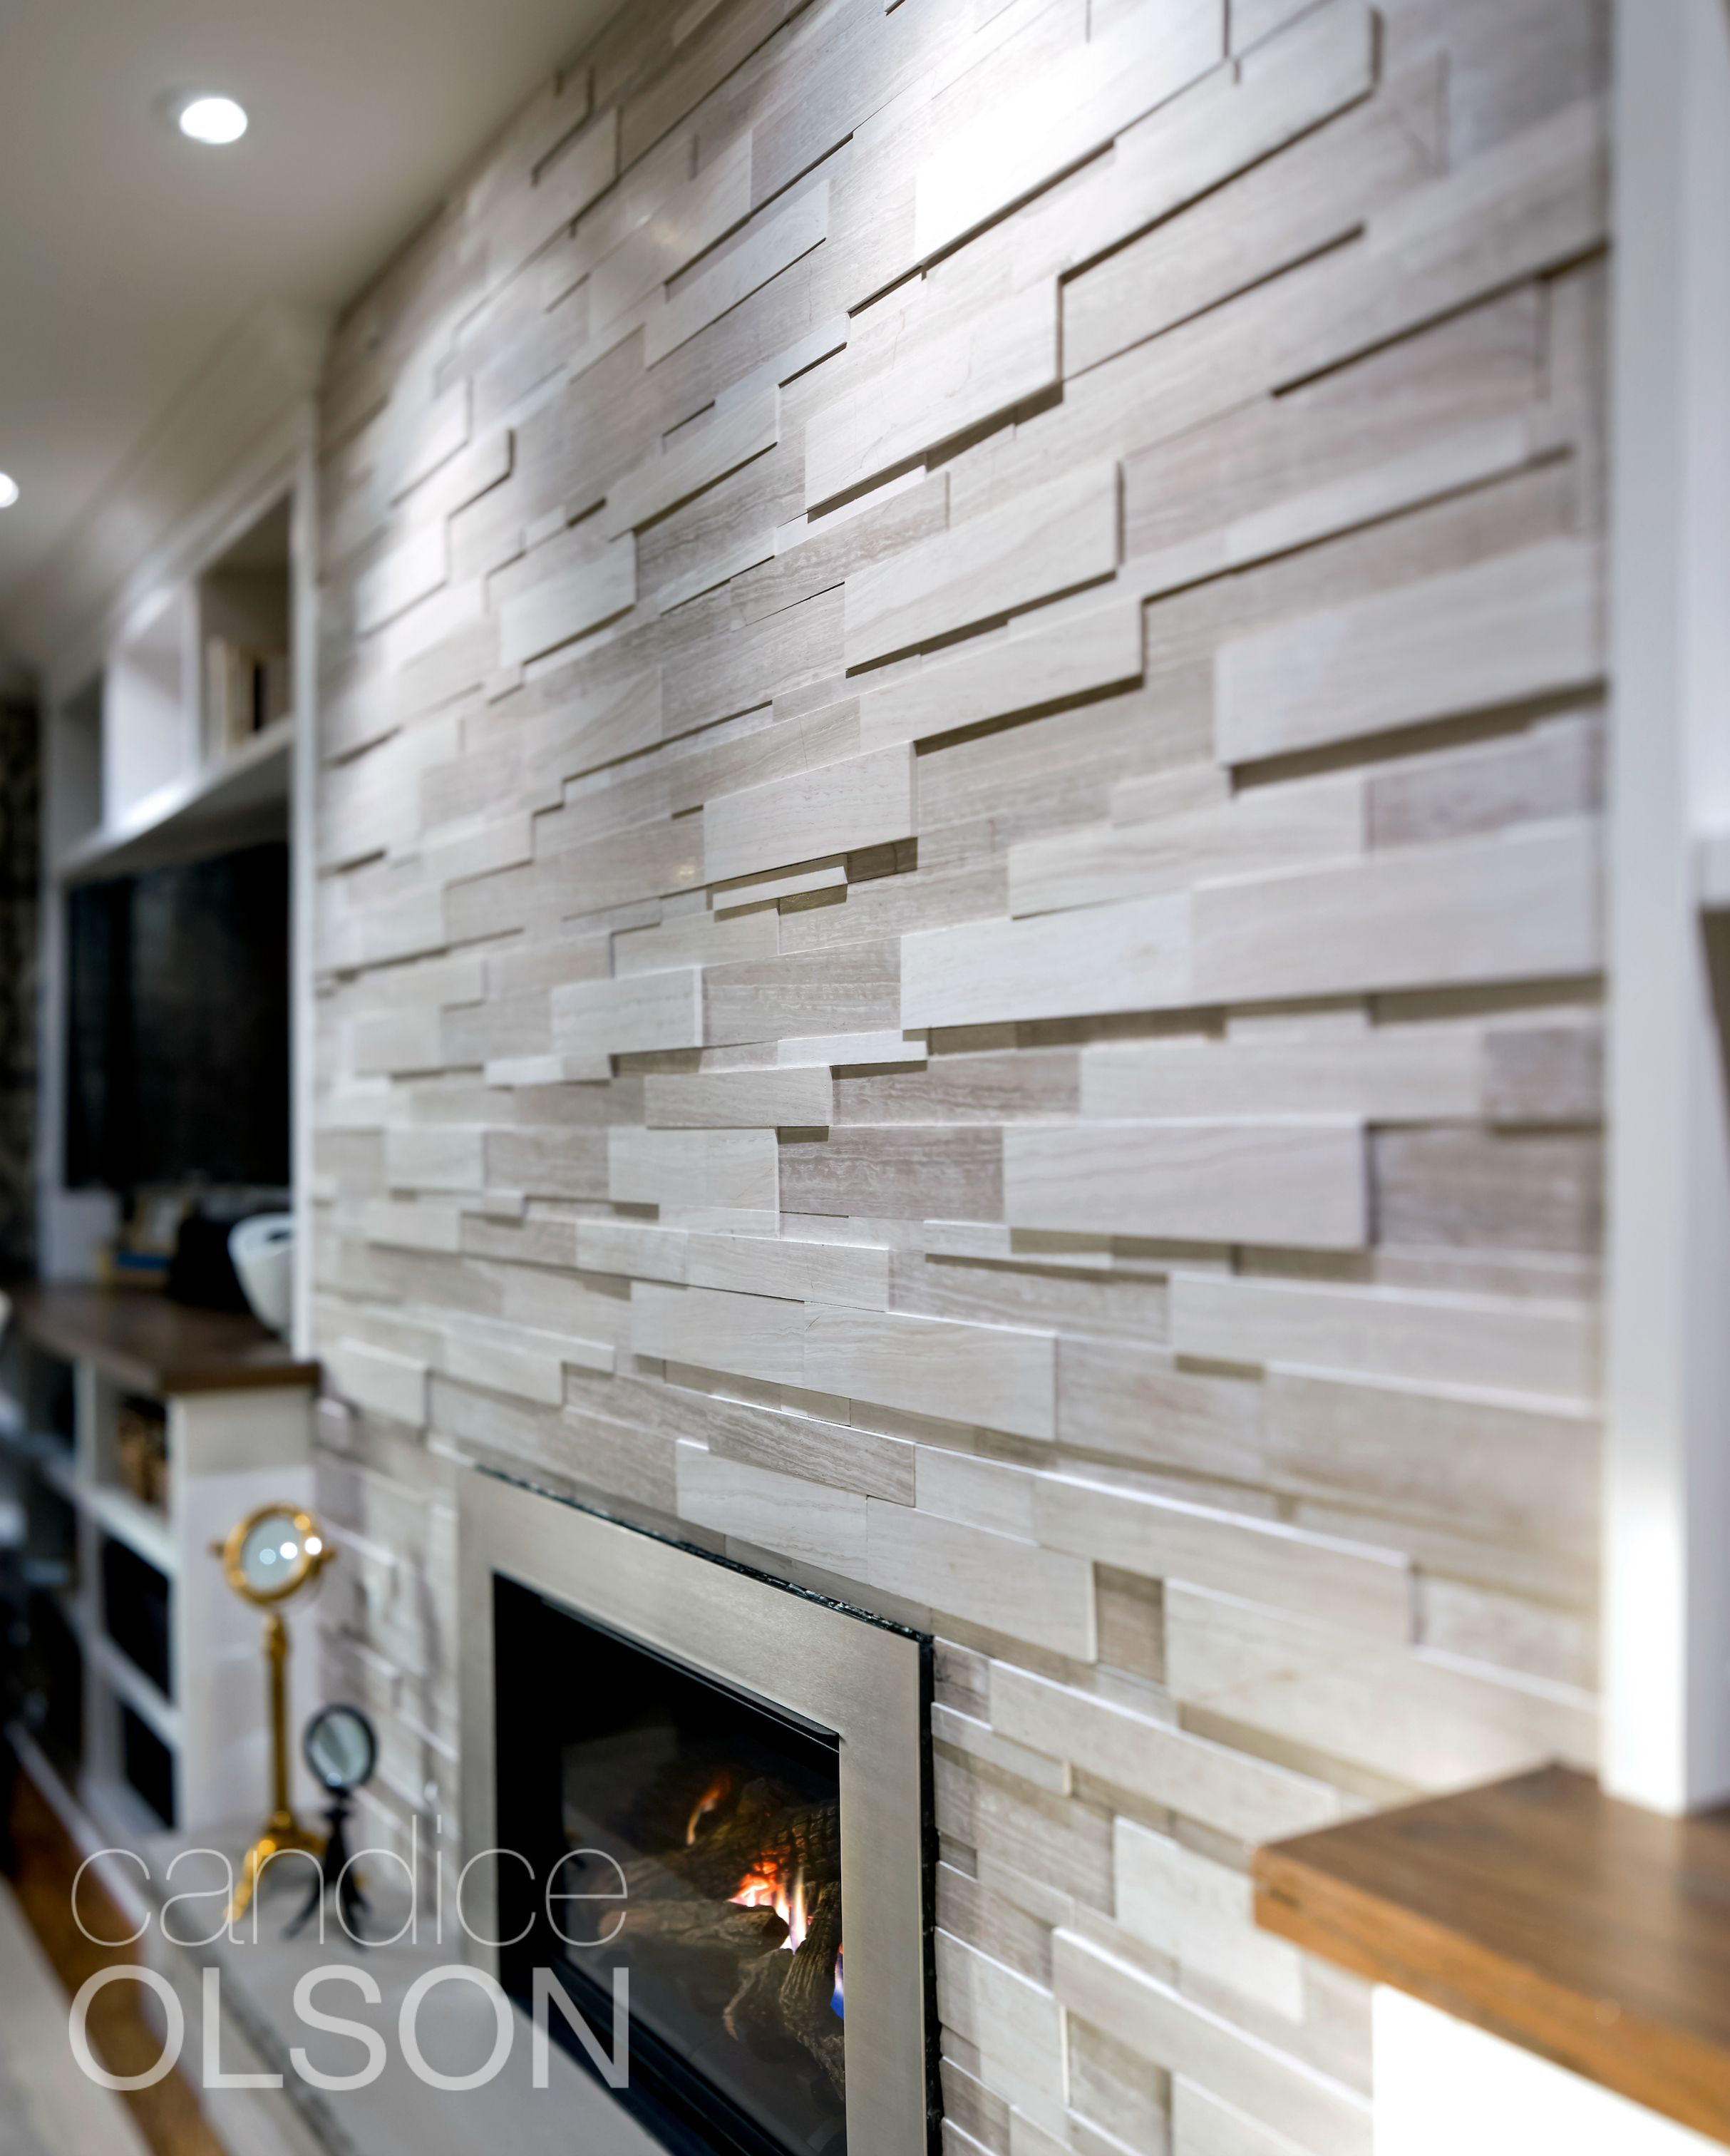 A Beautiful Wall Of Stacked Stone Veneer The Stone Says